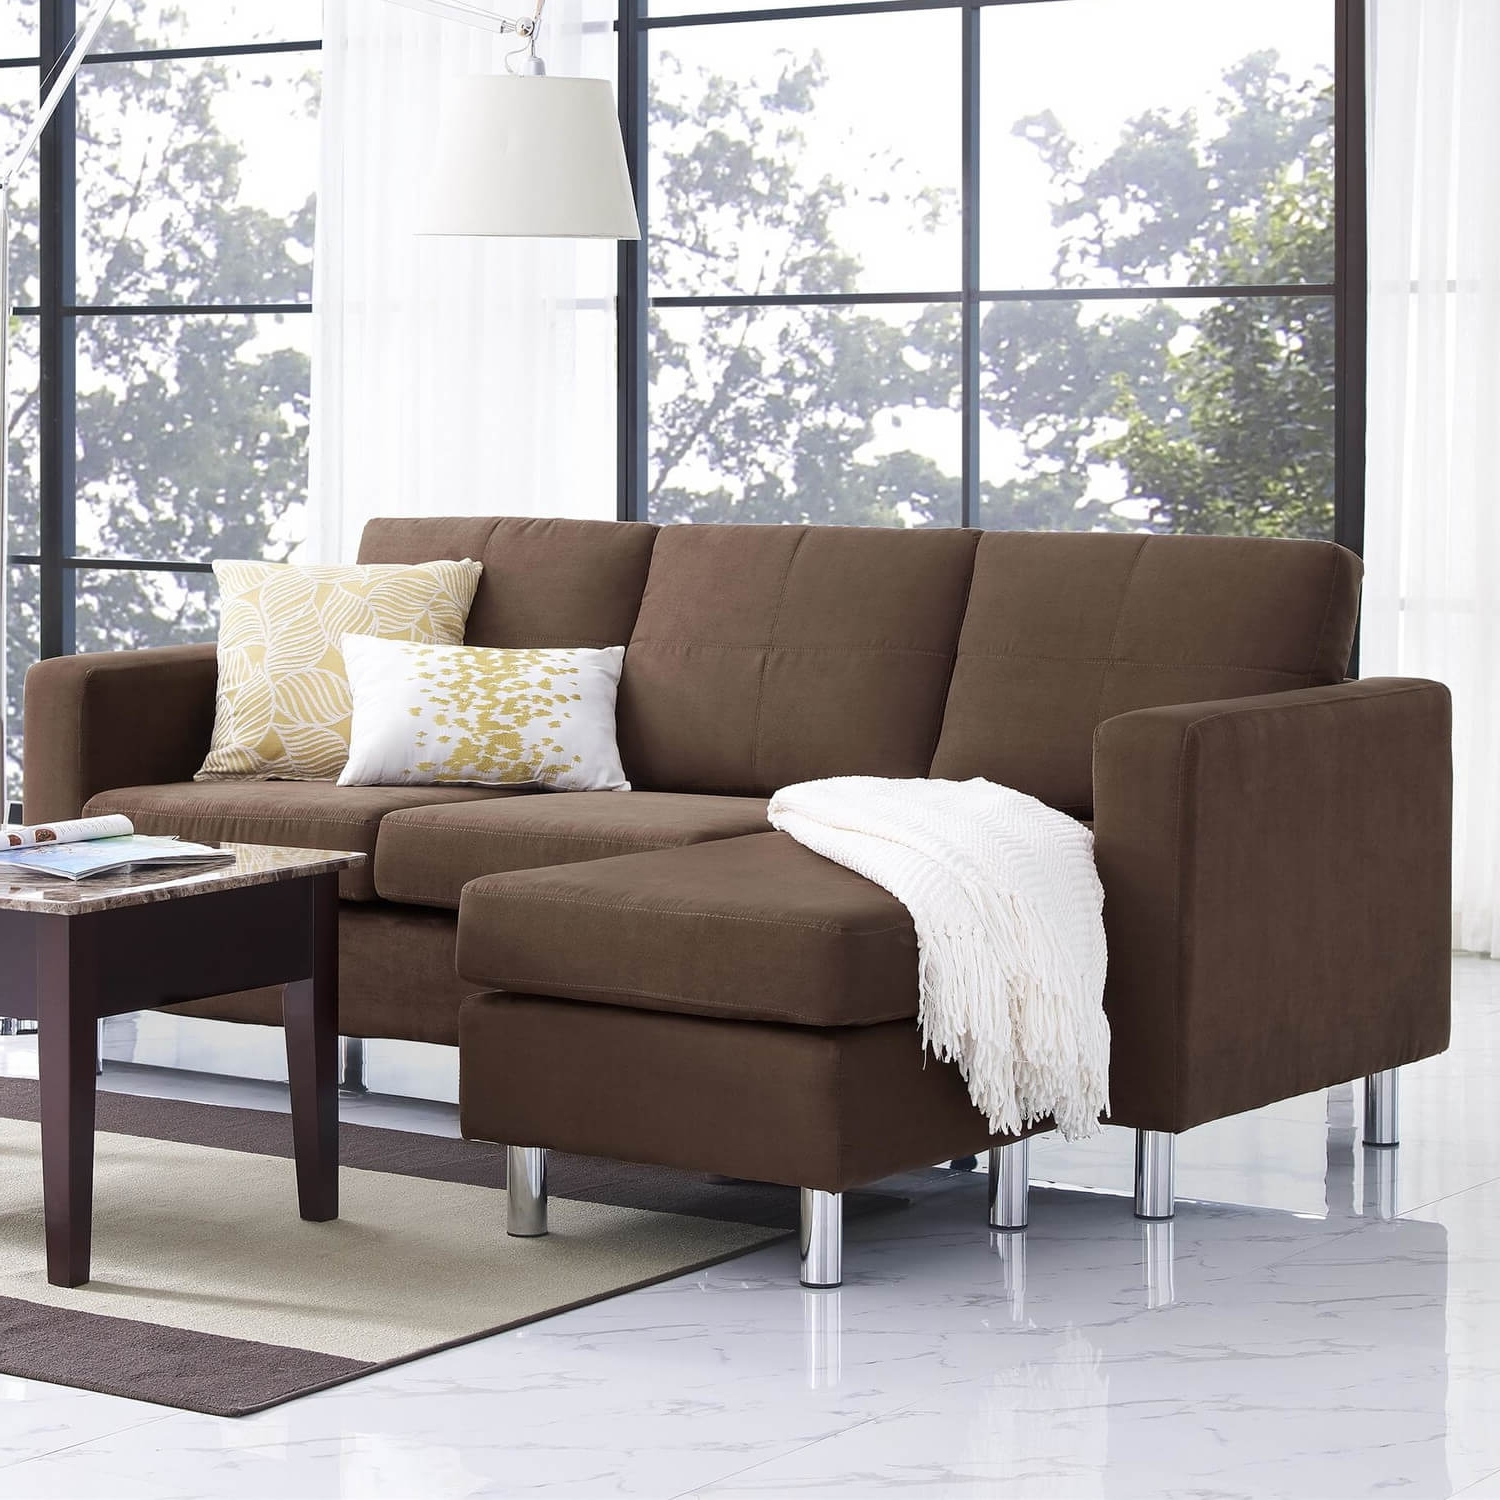 Sectional Sofas Under 400 With Regard To Well Liked 40 Cheap Sectional Sofas Under $500 For  (View 9 of 15)